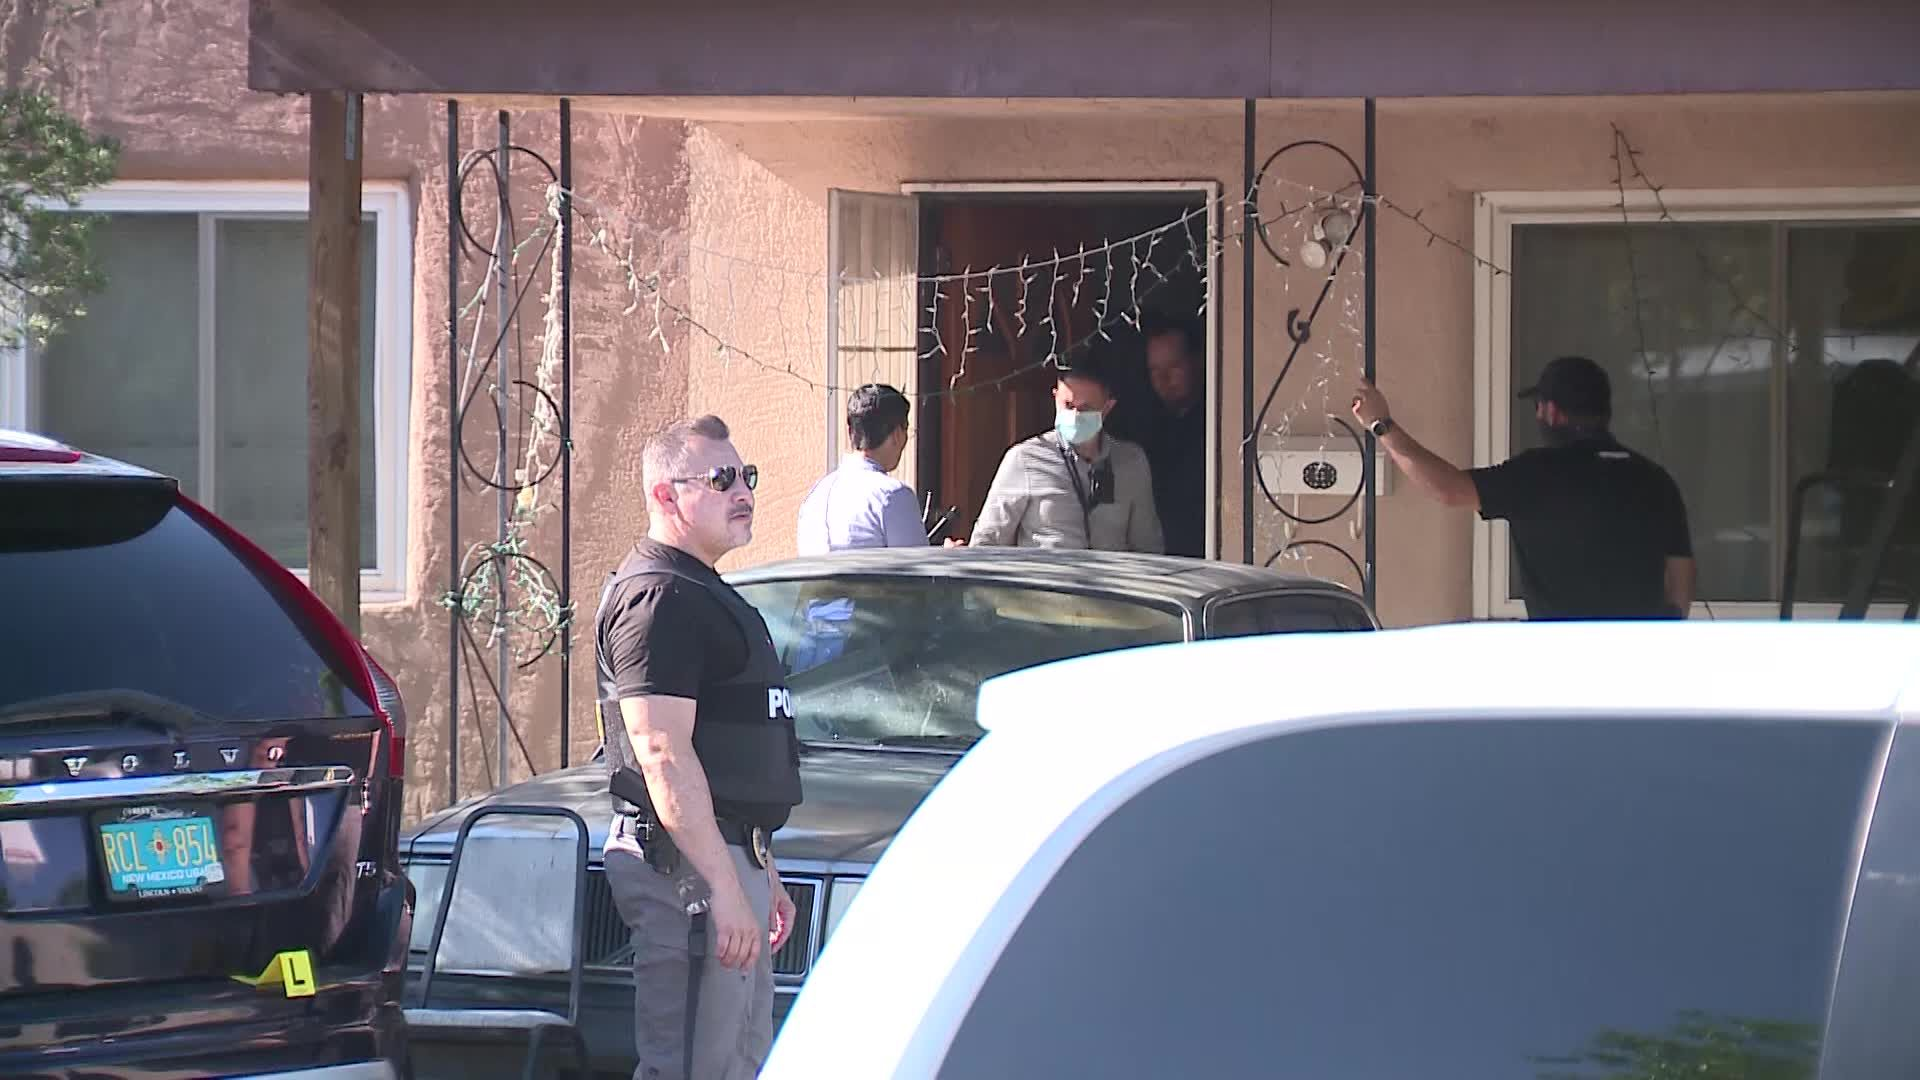 Search warrant at Rep. Stapleton's home